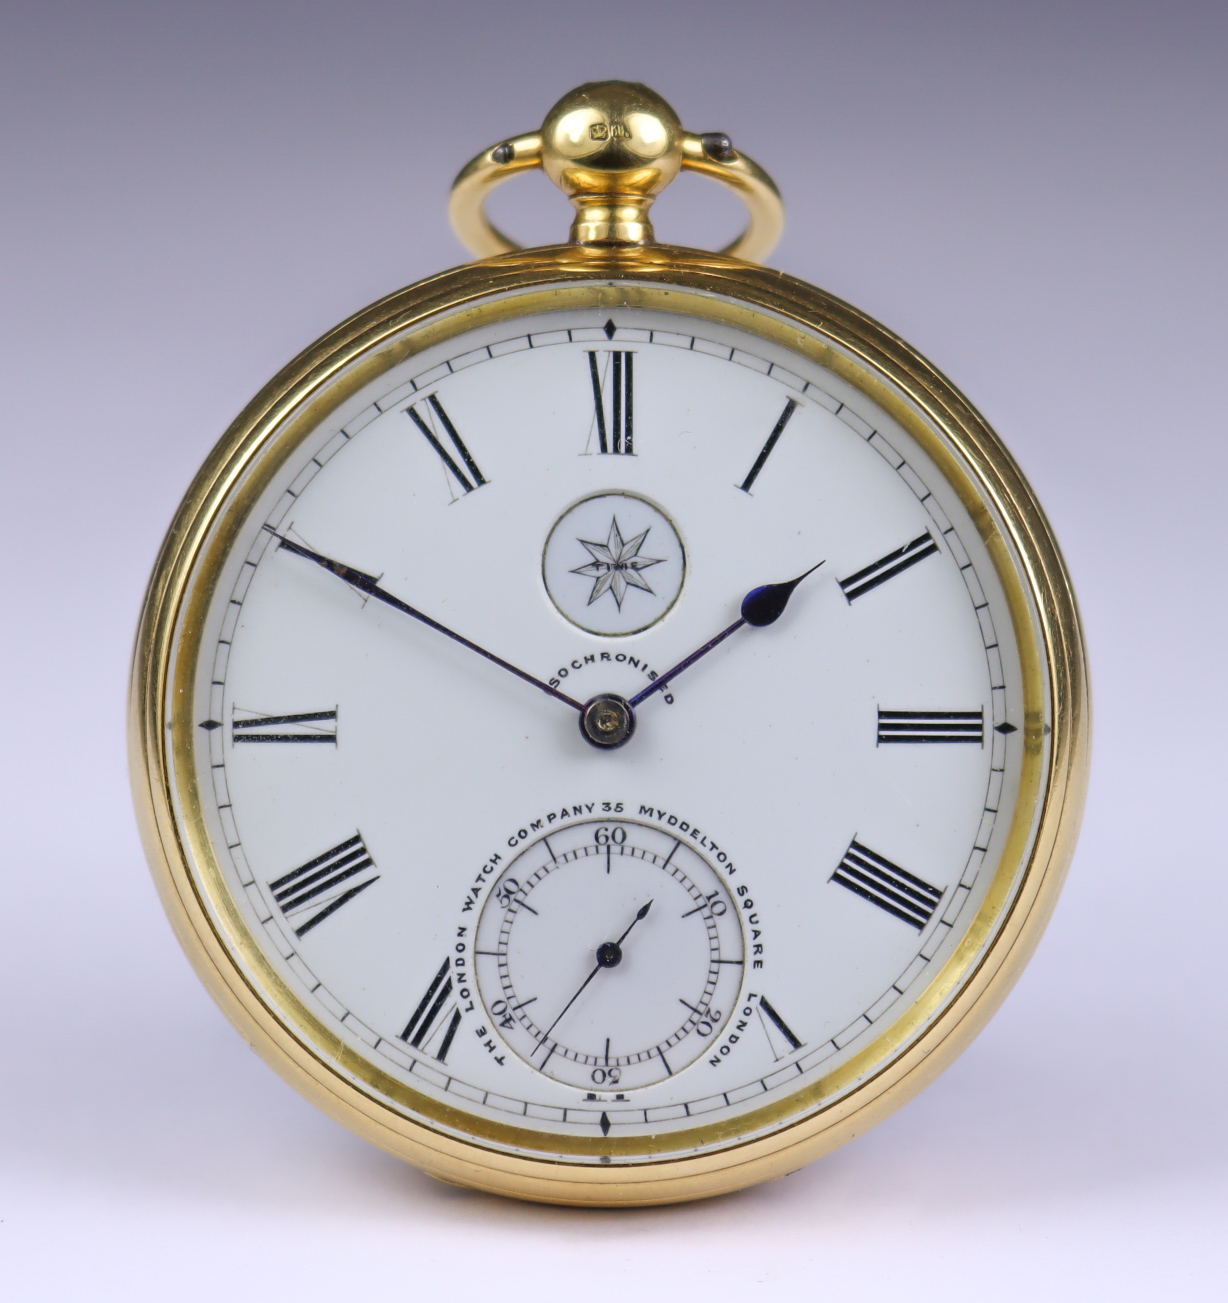 An 18ct Gold Open Faced Fusee Lever Pocket Watch, by The London Watch Company, 35 Myddleton